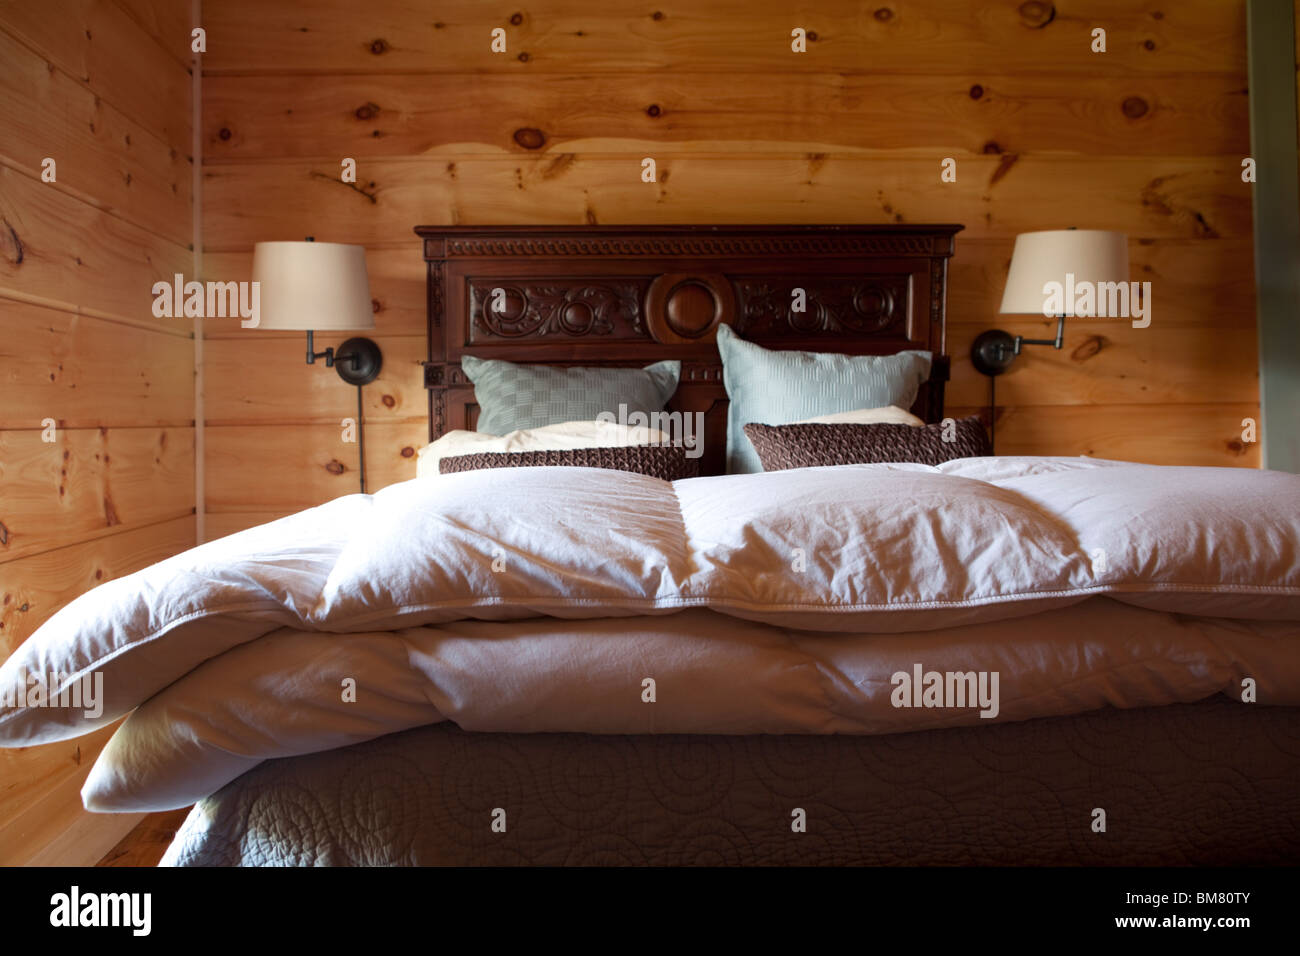 Wooden cottage bedroom with bed duvet double bed and pillows. American countryside. USA - Stock Image